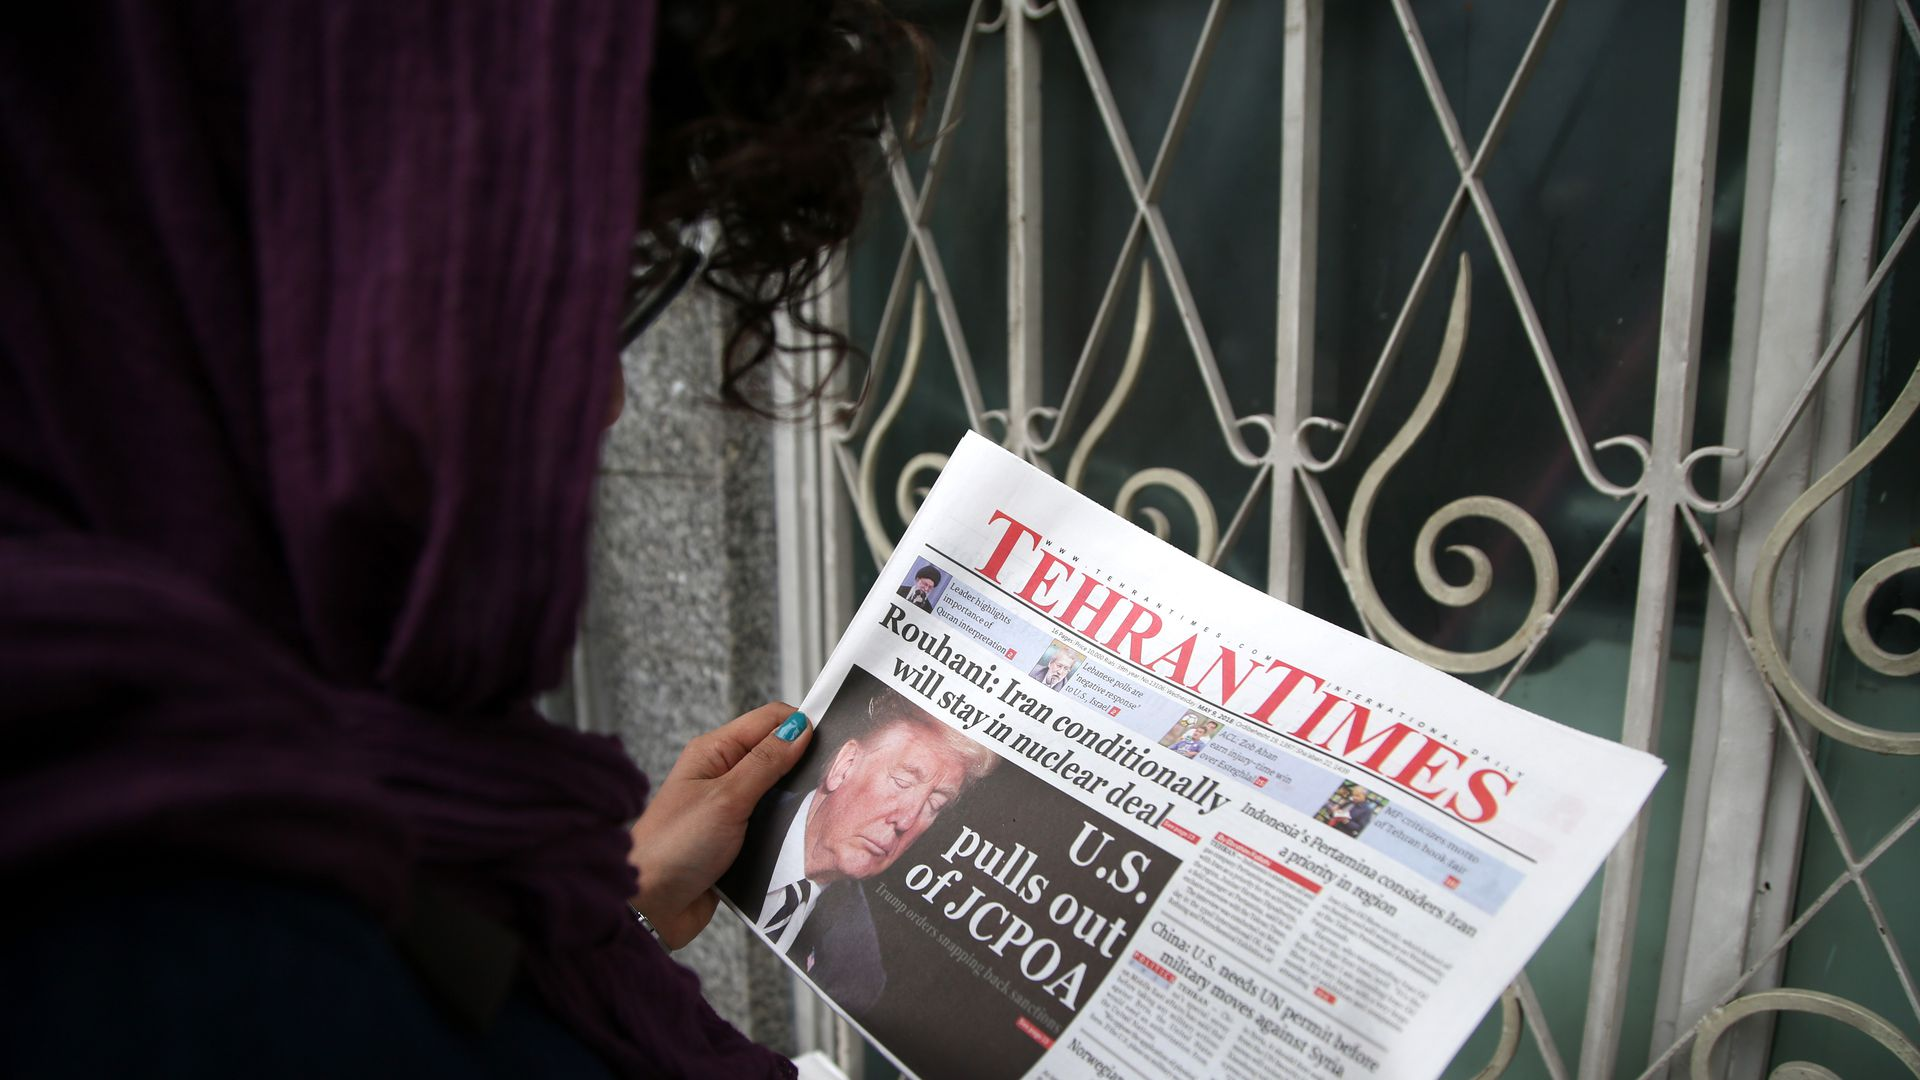 A woman reads Tehran Times on May 9, 2018 in Tehran, Iran. US President Donald Trump announced 'withdrawal' from Iran nuclear deal on May 9, 2018.